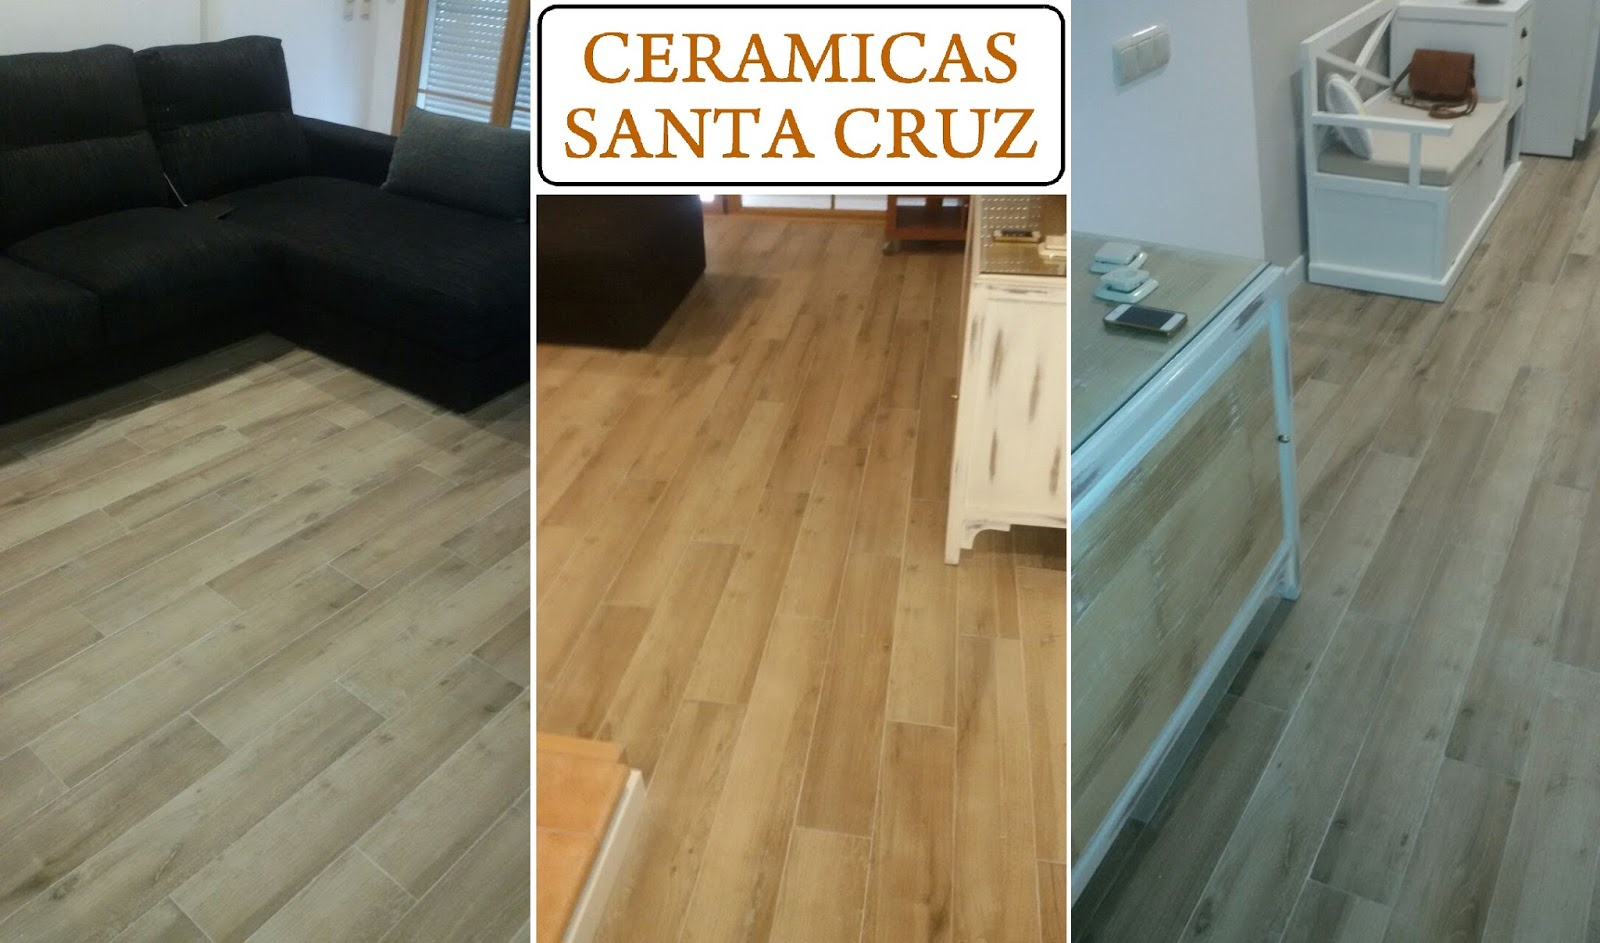 Ceramicas santa cruz julio 2015 for Ceramica imitacion parquet